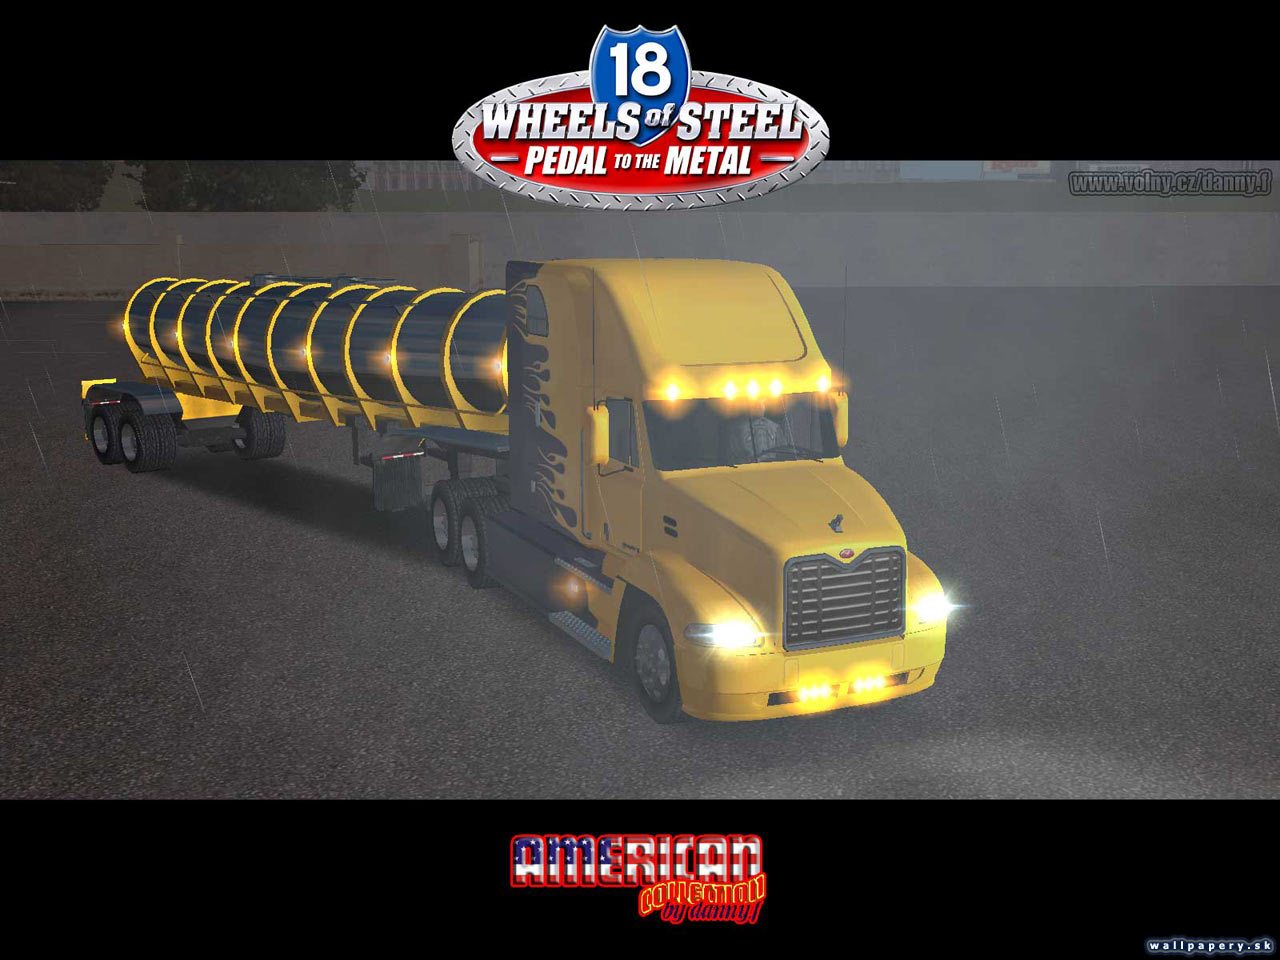 Operate up to 35 trucks to deliver goods to 30 cities All over North Americ